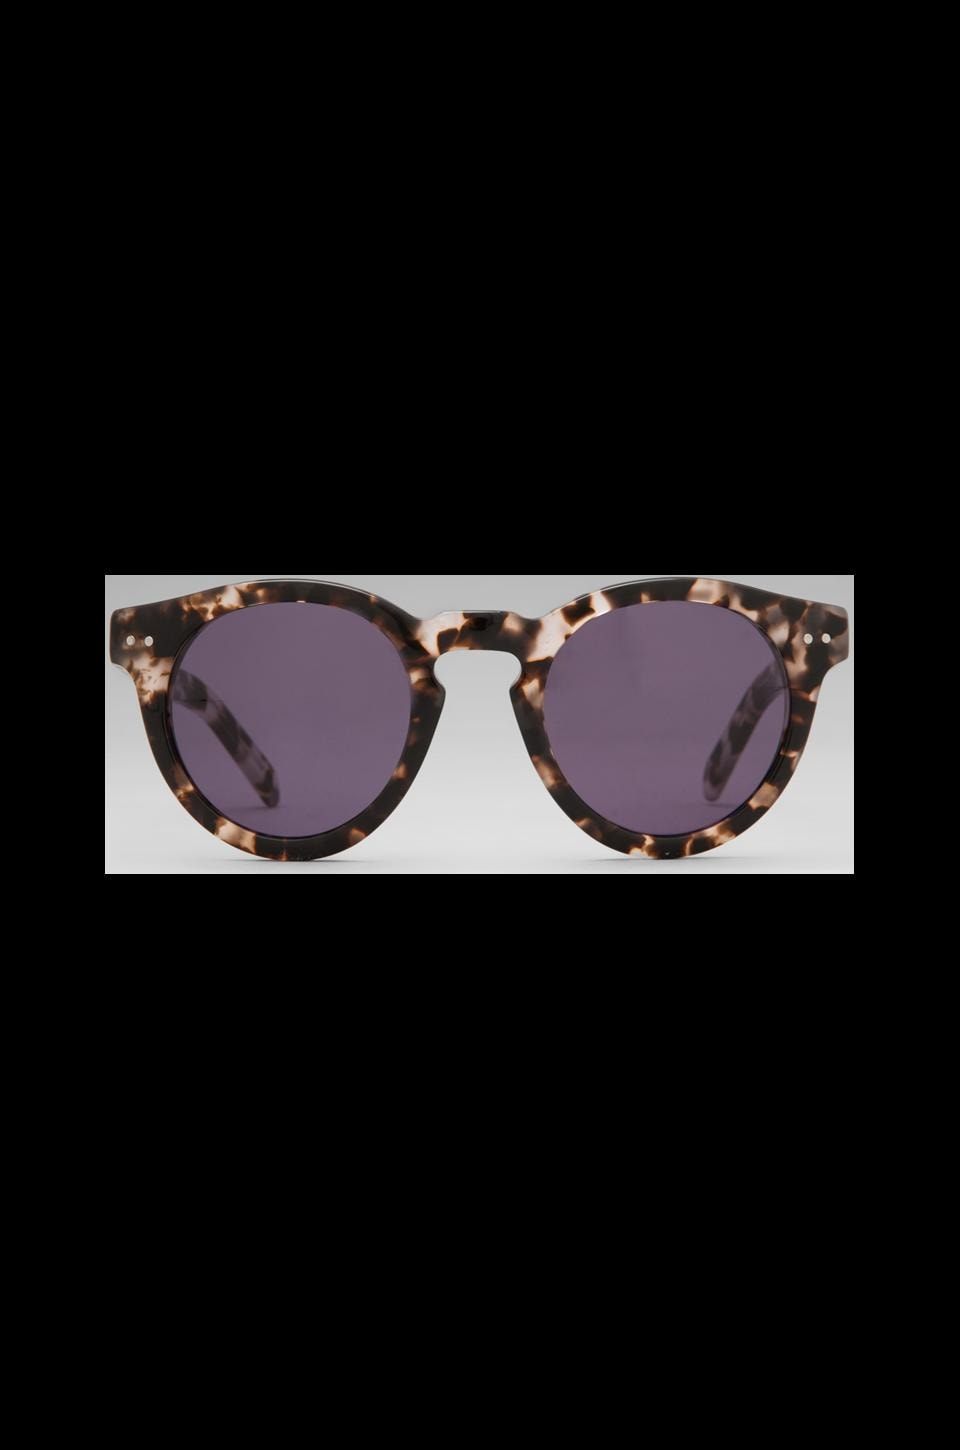 House of Harlow 1960 House of Harlow Carmen Sunglasses in Clear Tortoise